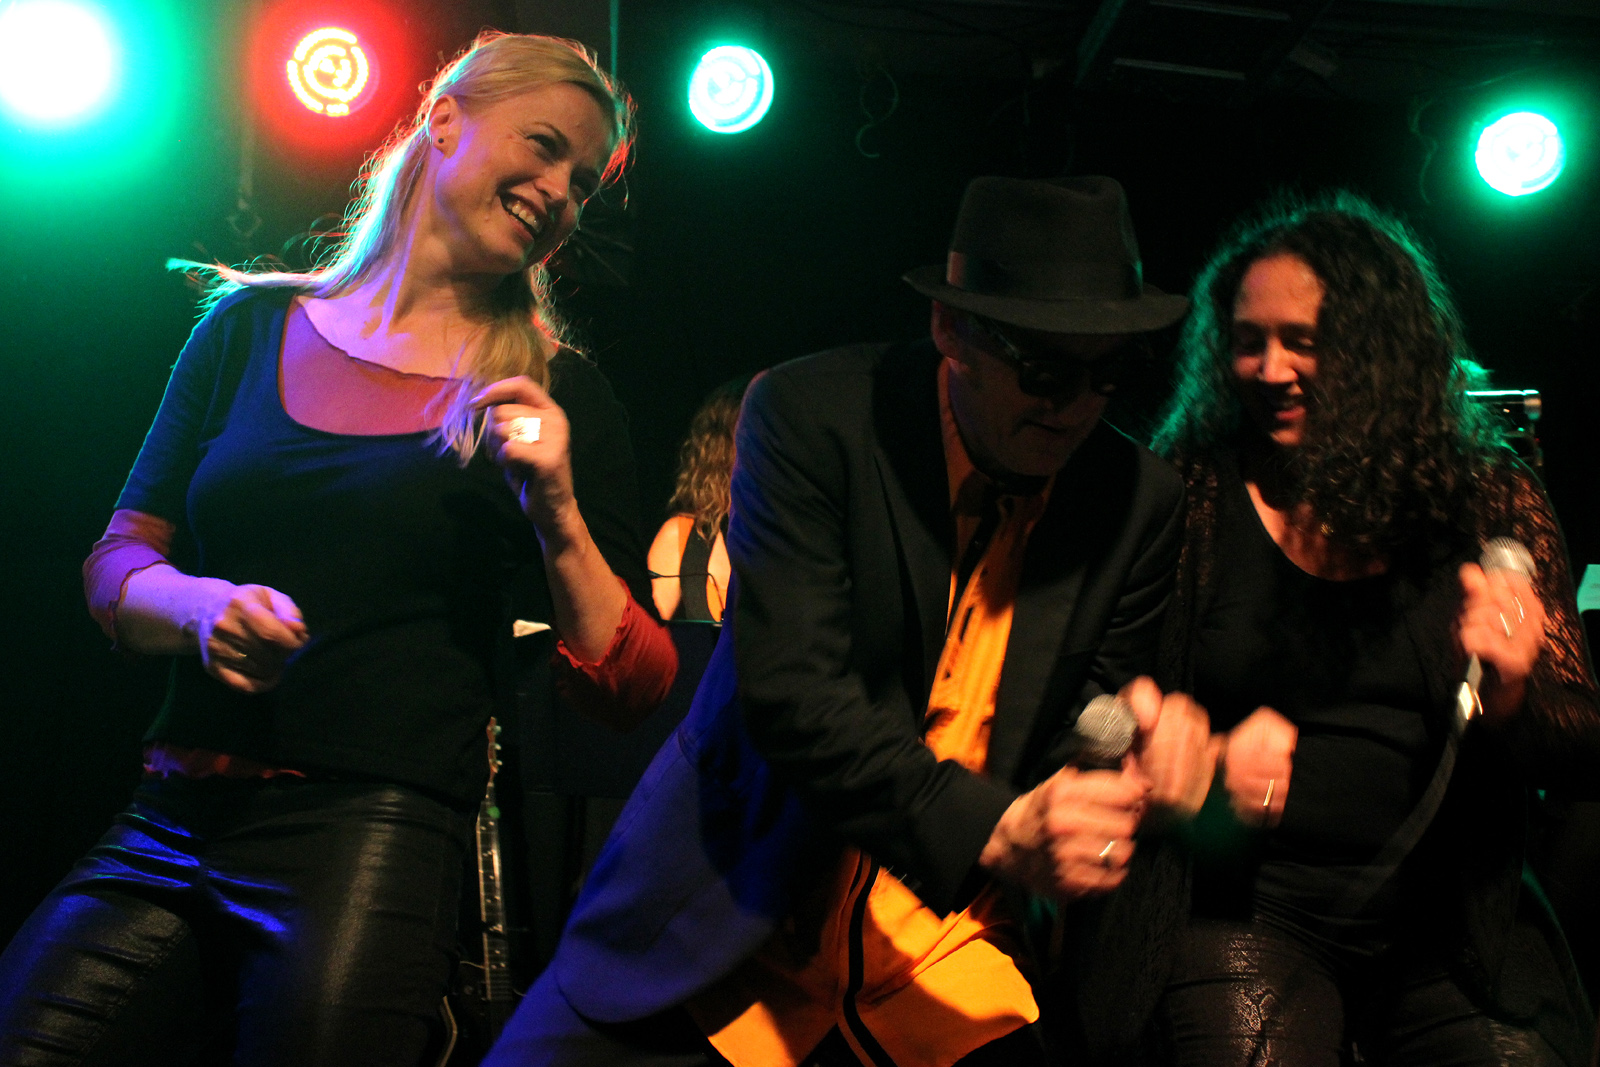 The-Souldiers-2013-at-Puschkin-Dresden-with-MRCMCL